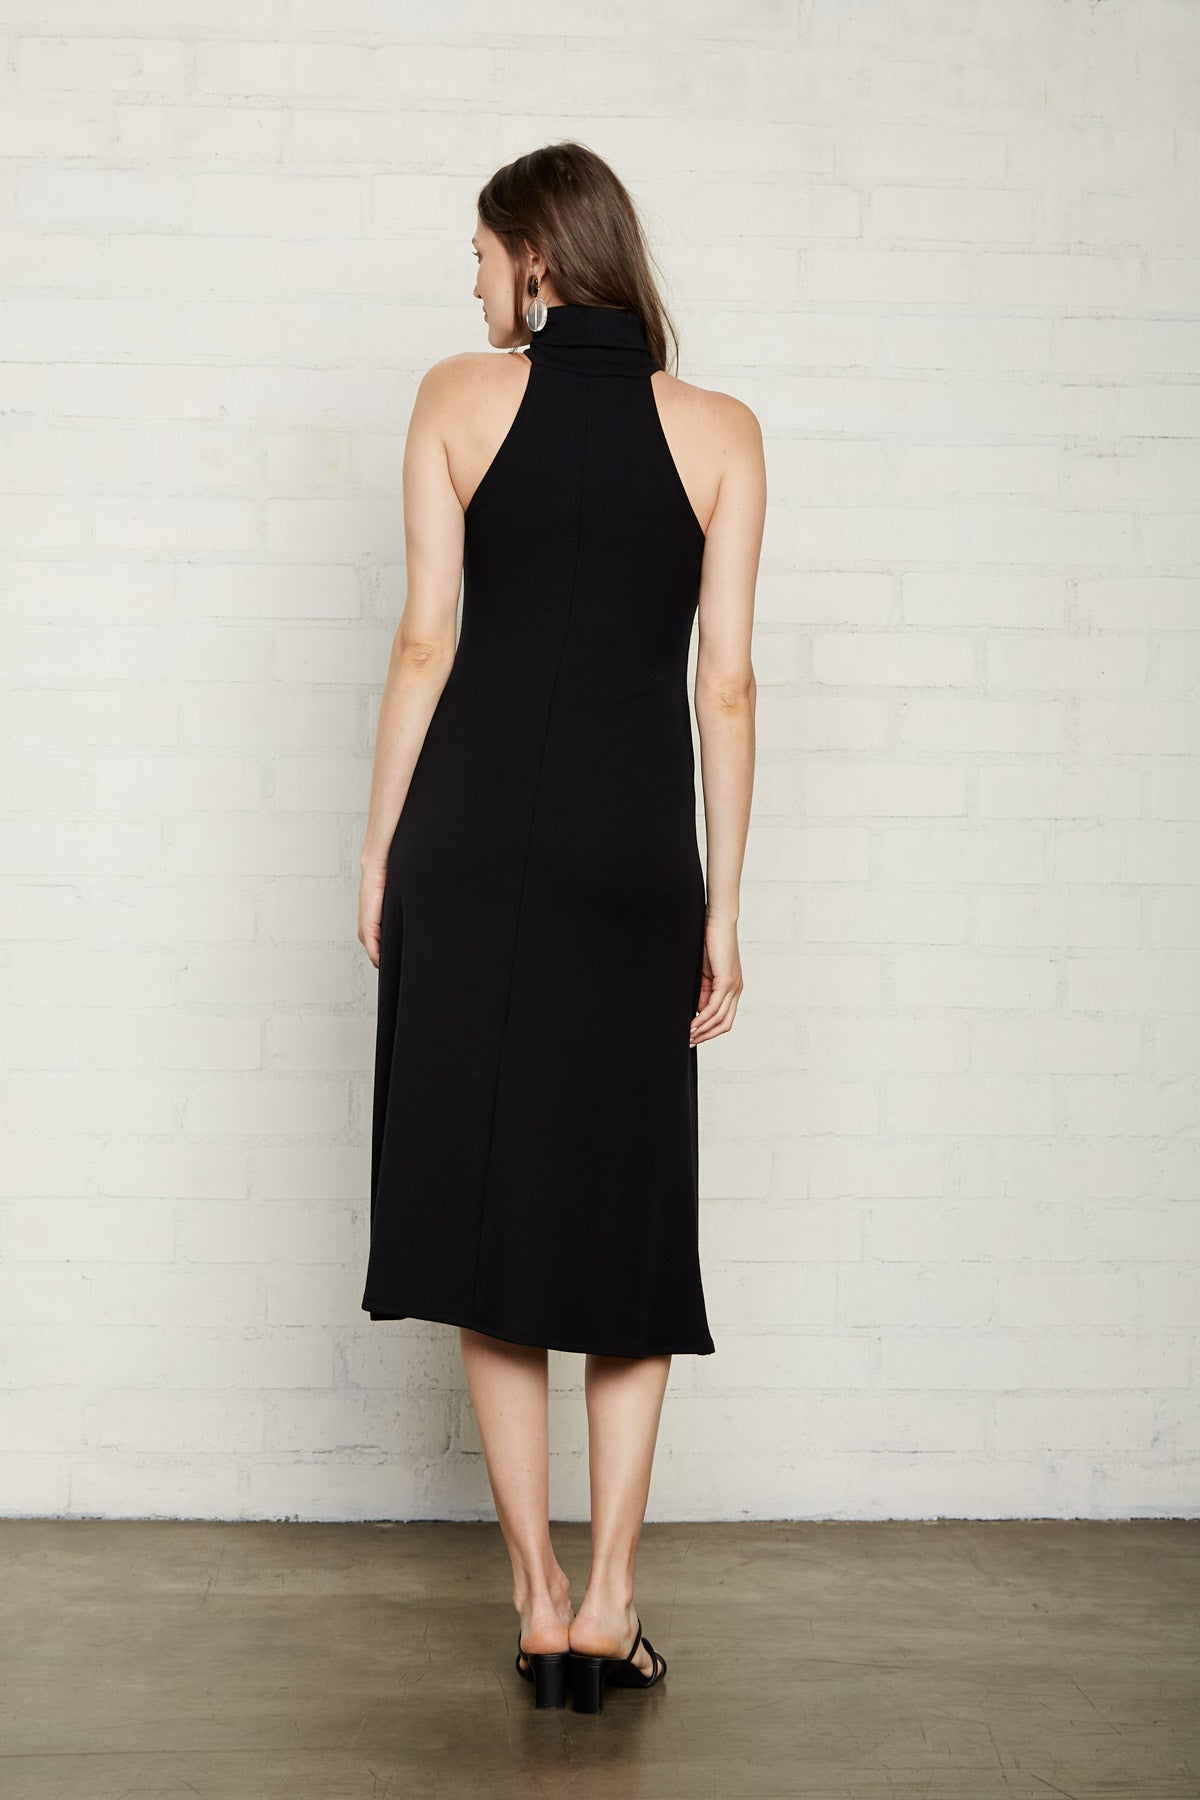 Luxe Rib Alondra Dress - Black, Maternity